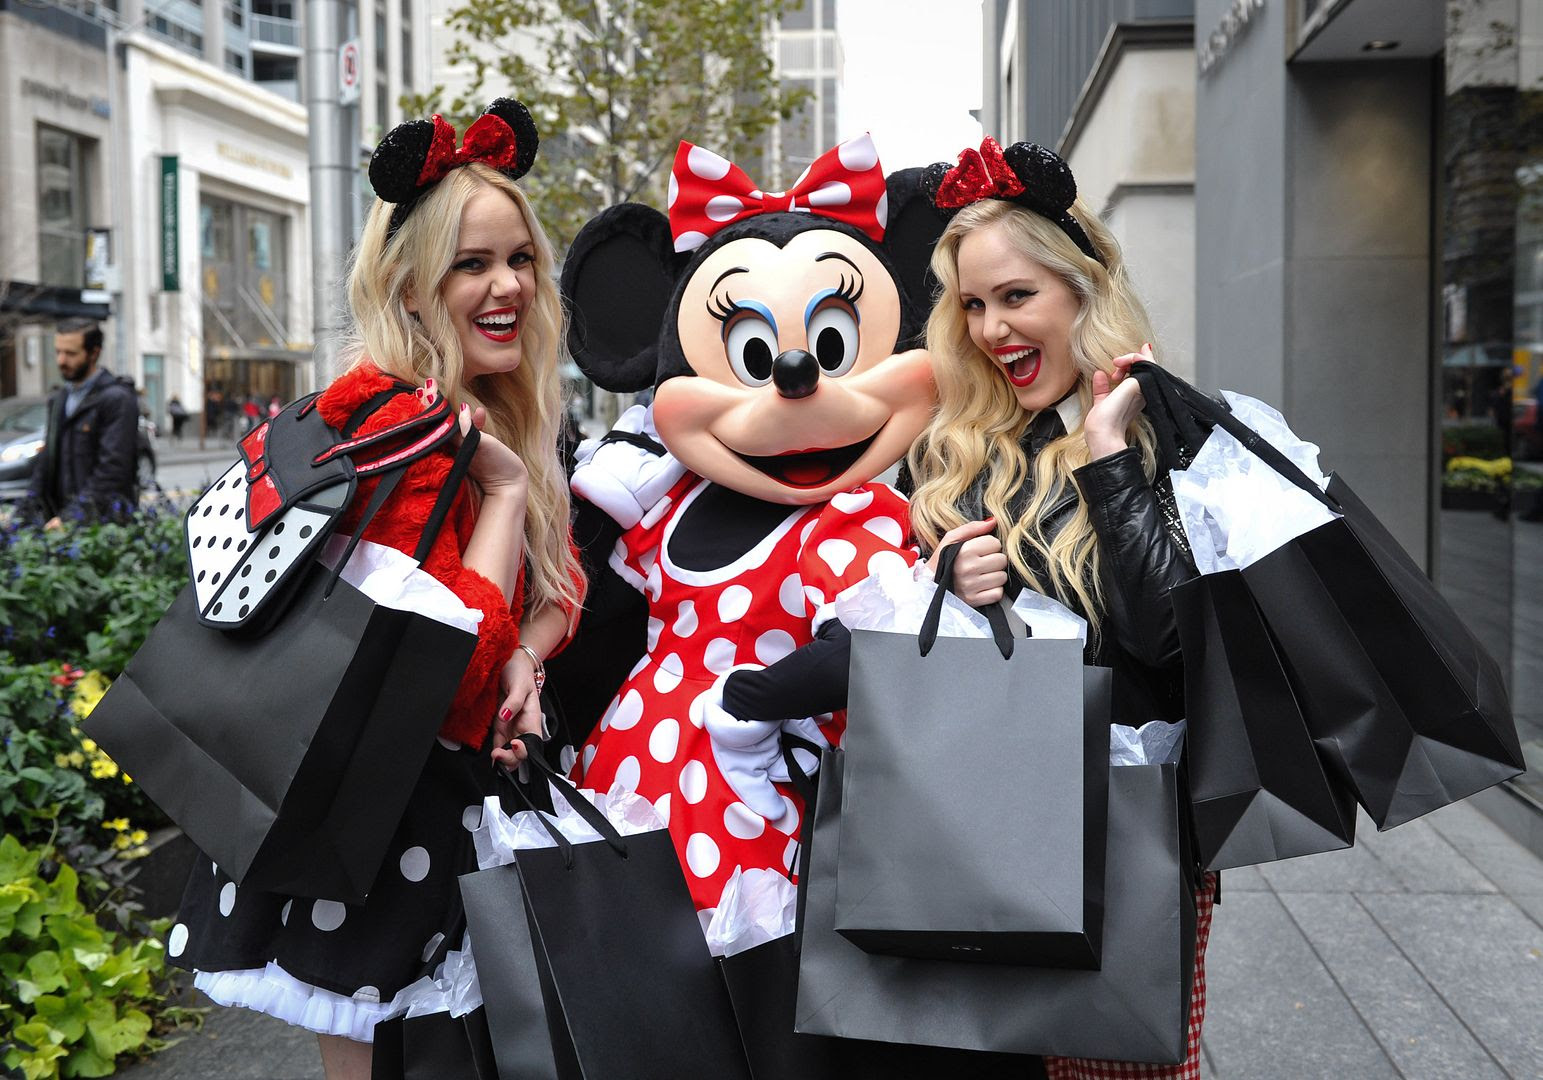 photo minniestyle-minniemouse-disney-beckermanblog-cailliandsambeckerman-disney-worldmastercardfashionweek-toronto-12_zpsa8c58008.jpg